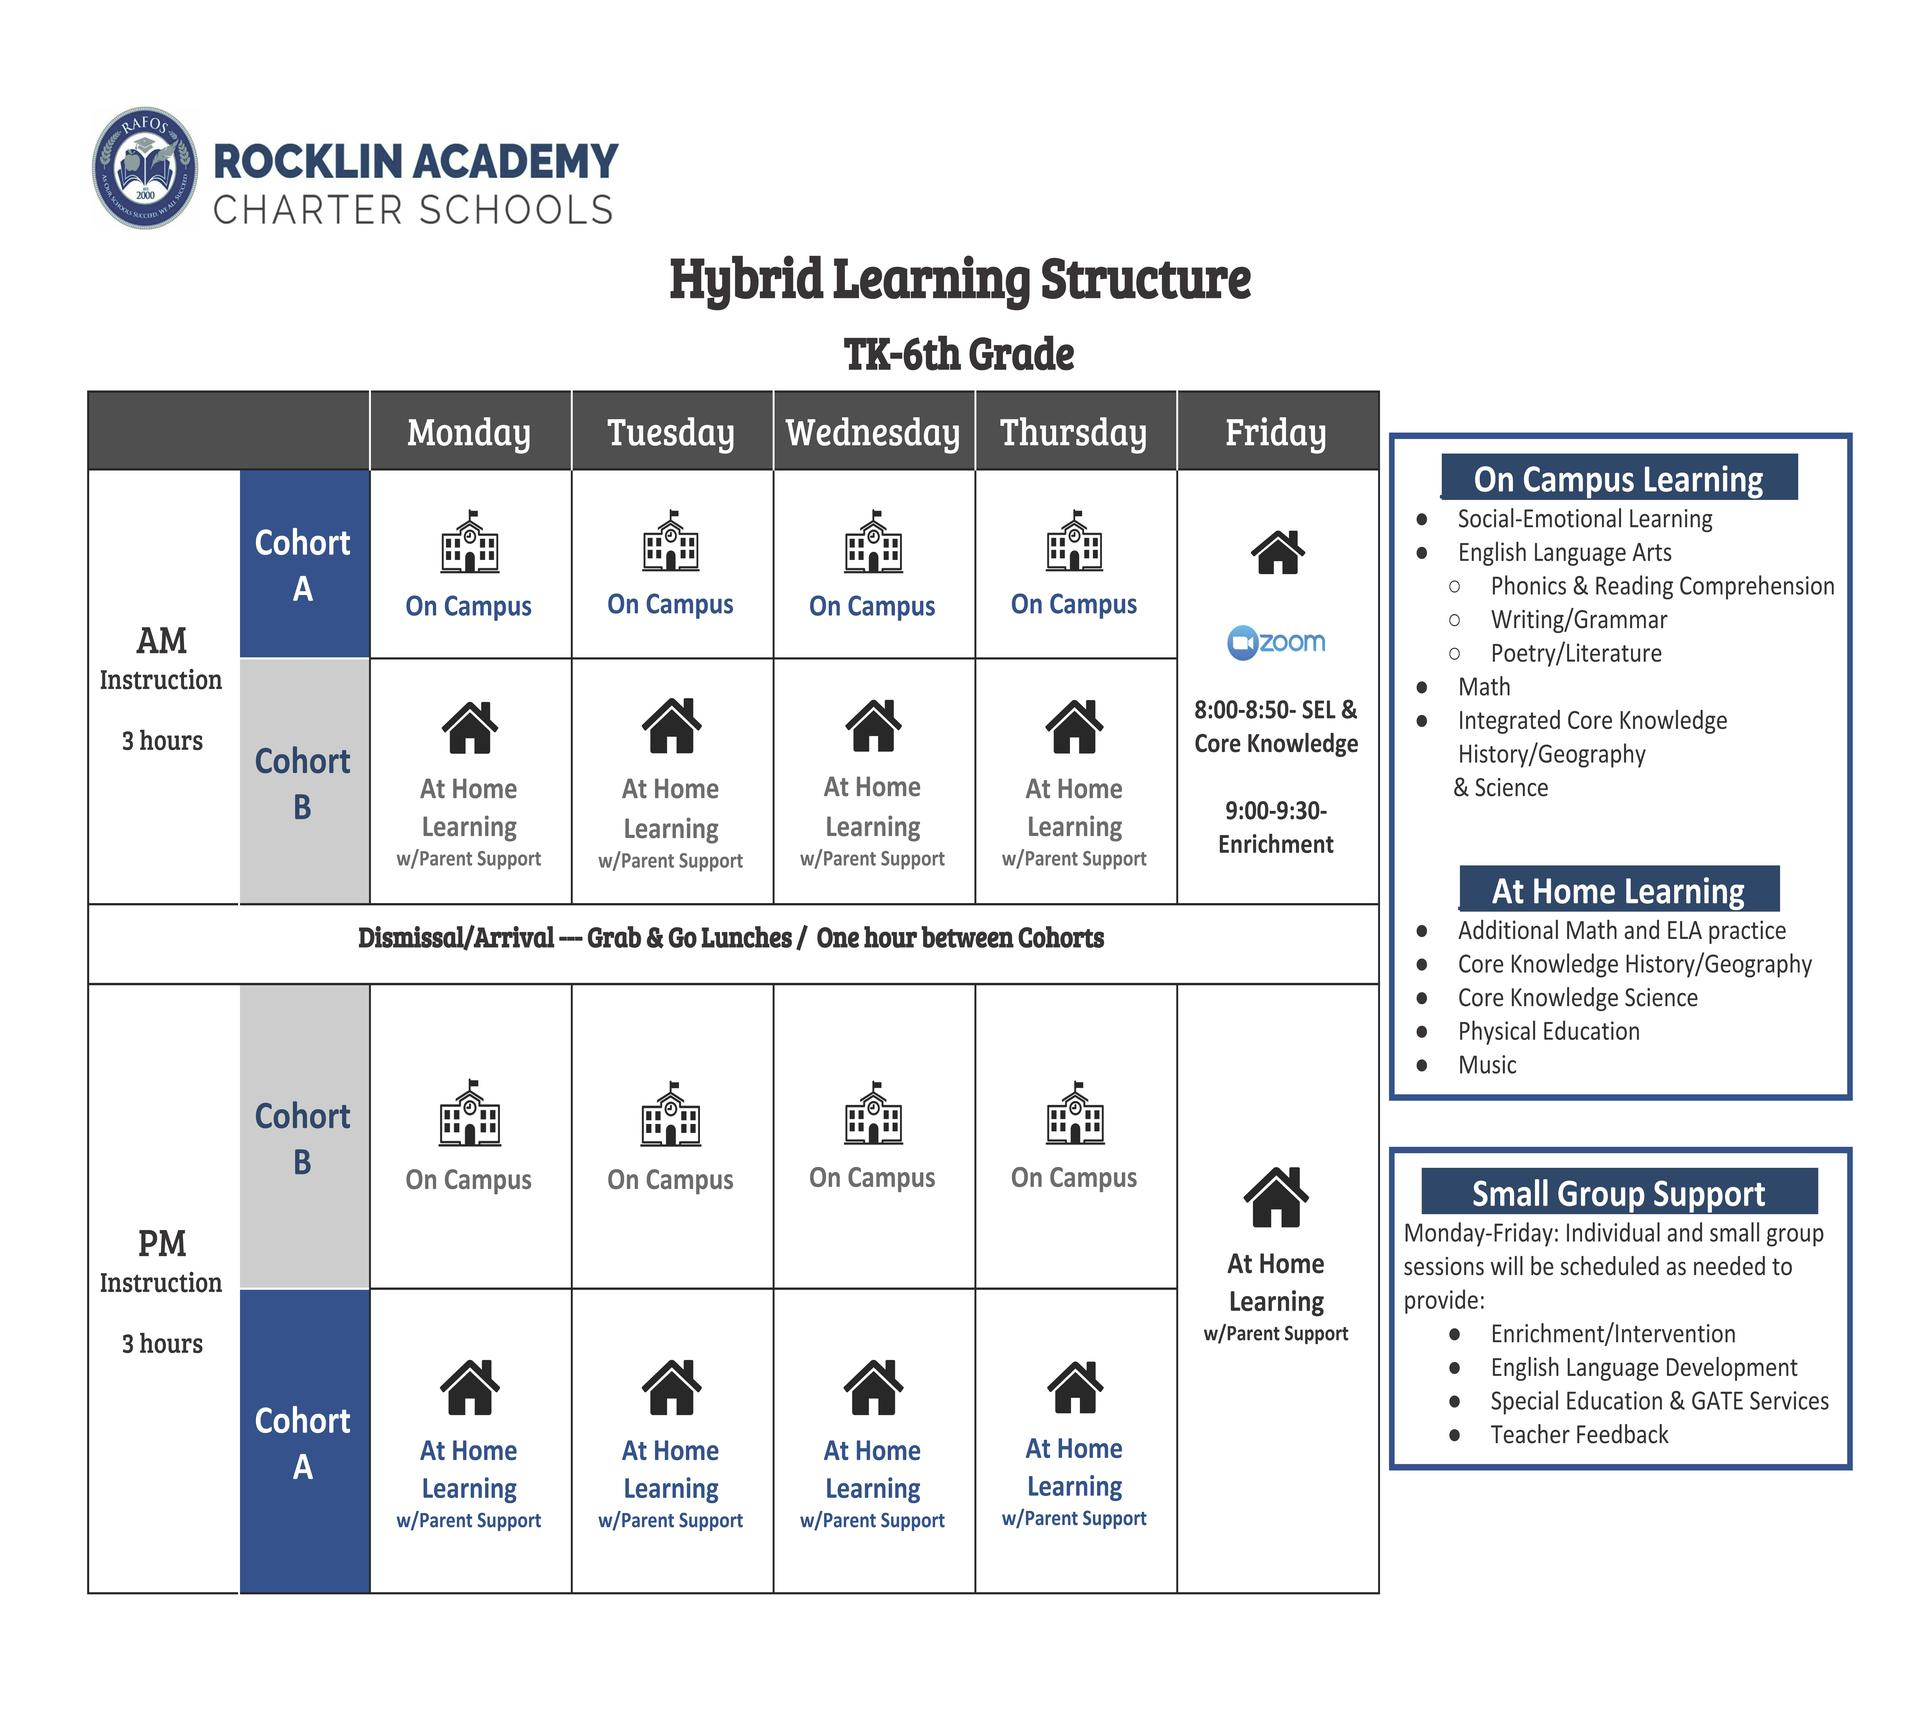 Hybrid Learning Structure